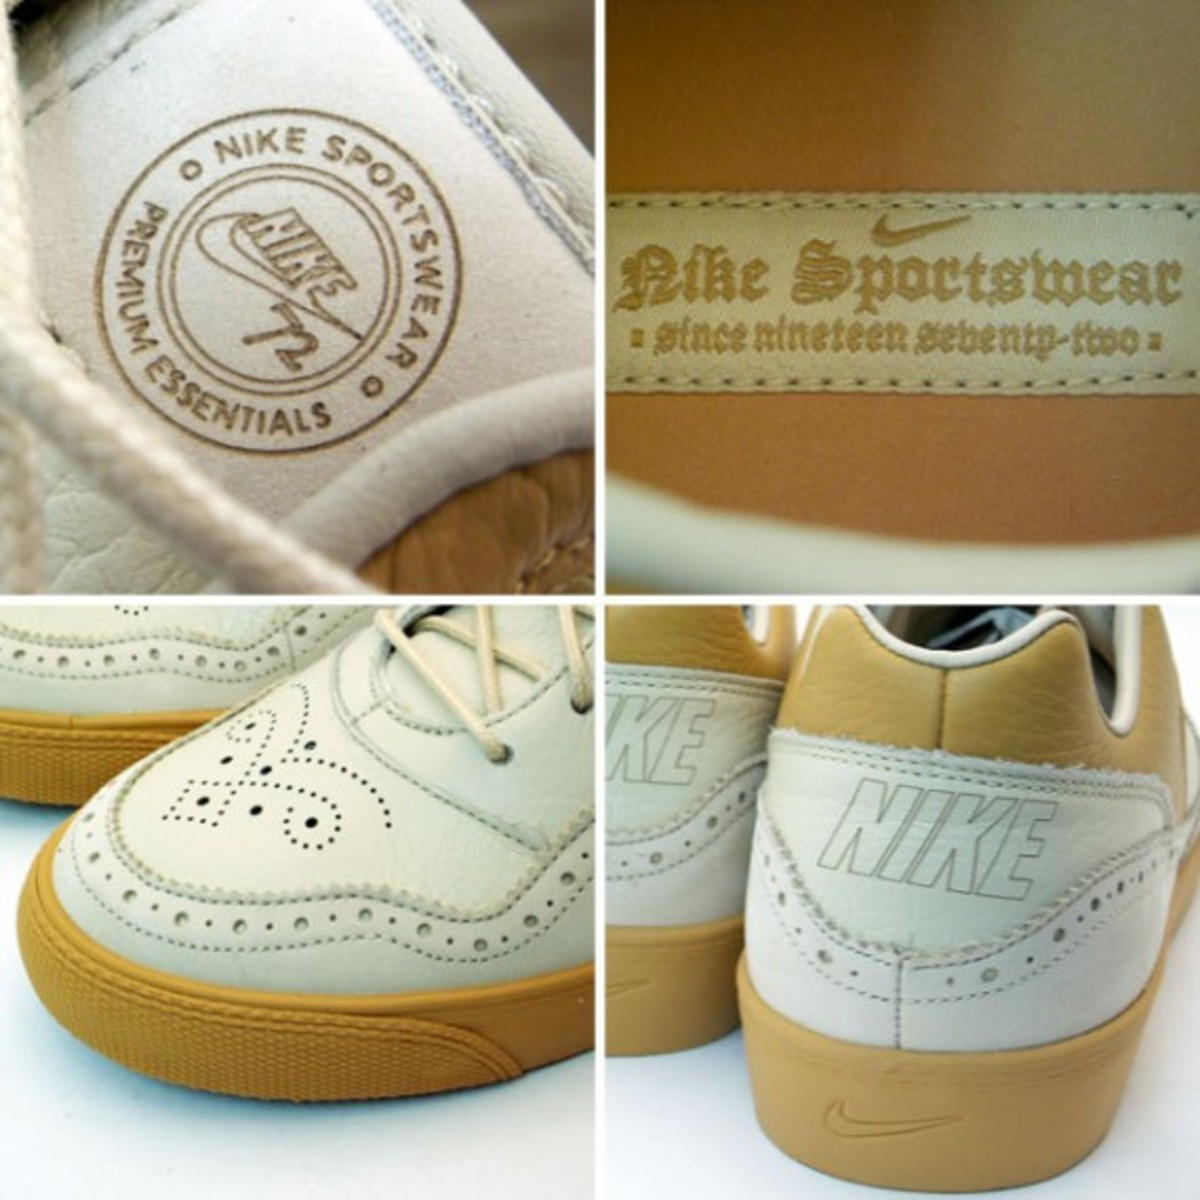 nike-talache-low-ac-supreme-premium-essentials-3